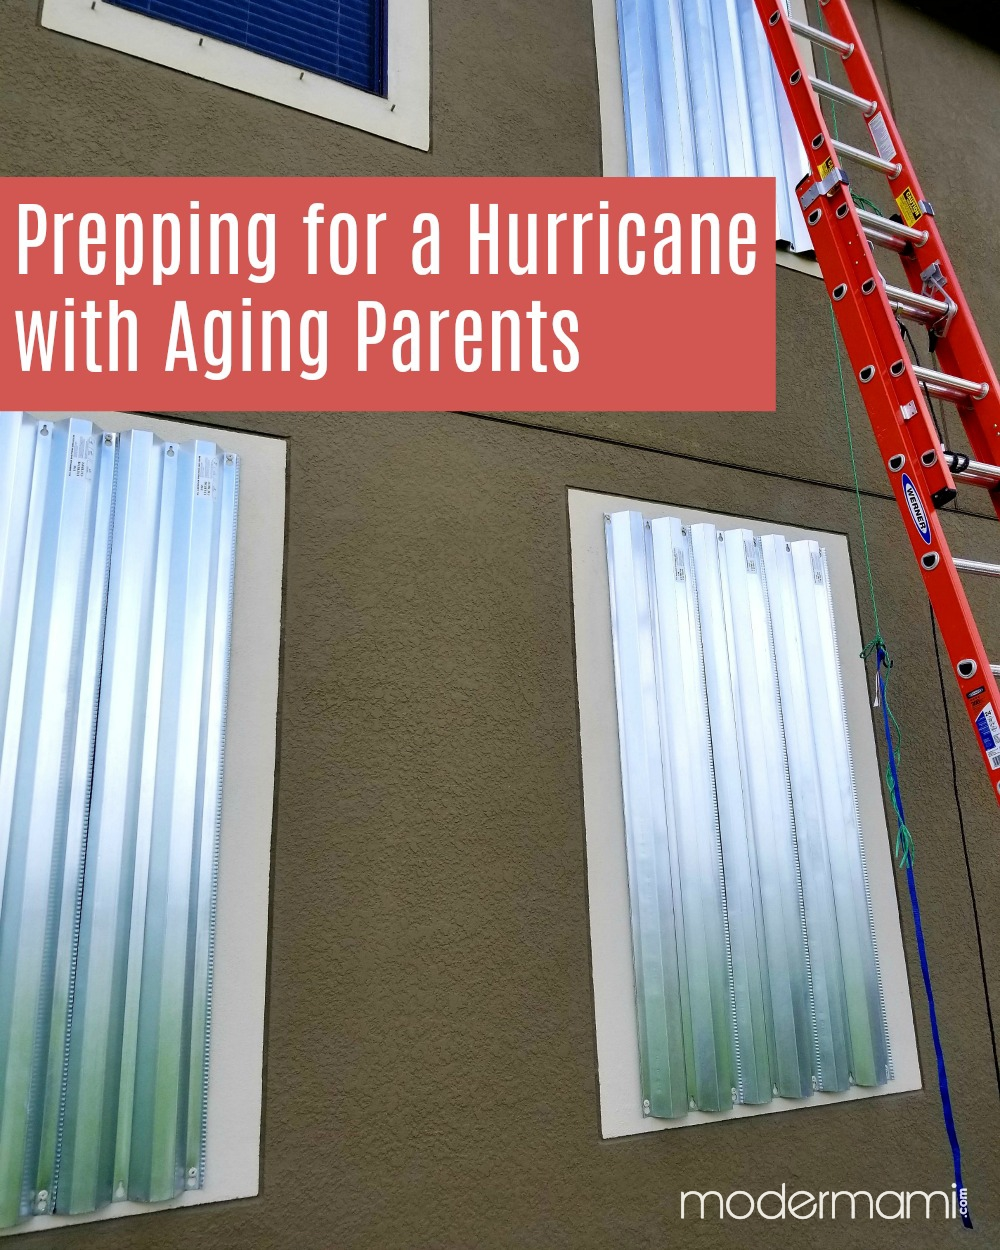 Prepping for a Hurricane with Aging Parents